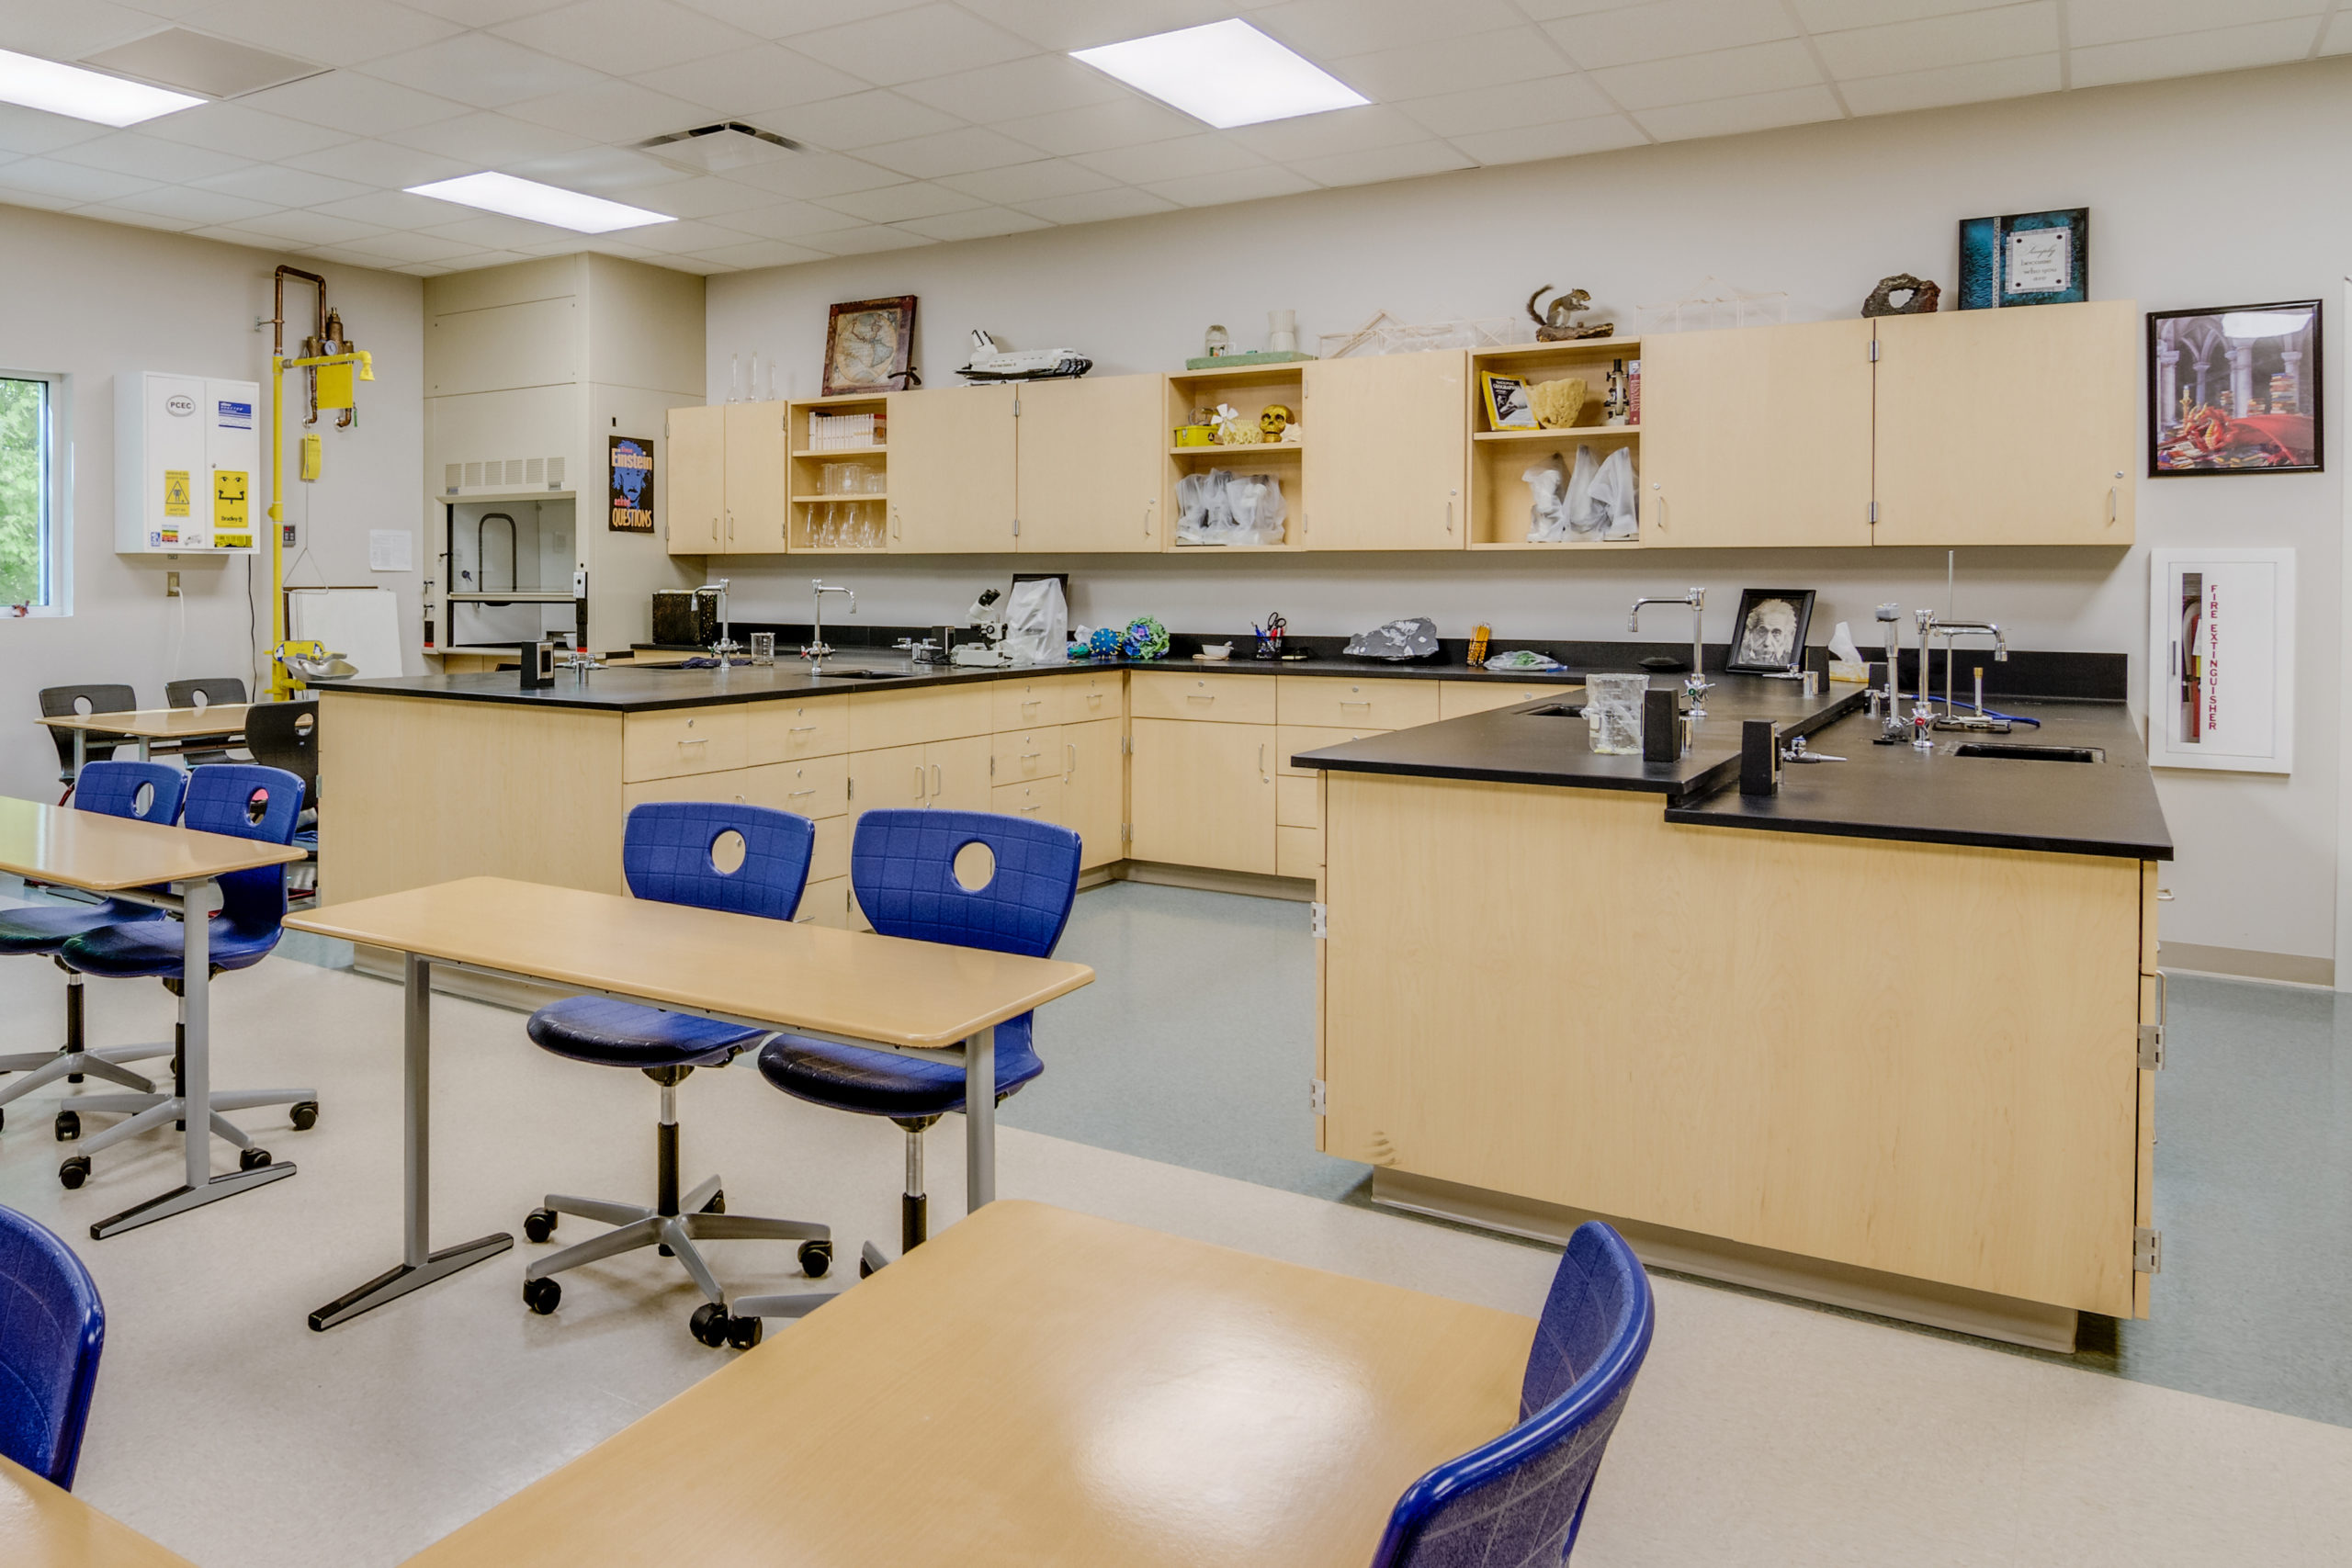 A photograph of a science lab and classroom in the Polk County Early College showing a mix of laboratory spaces in the rear of the classroom as well as desks in the front.